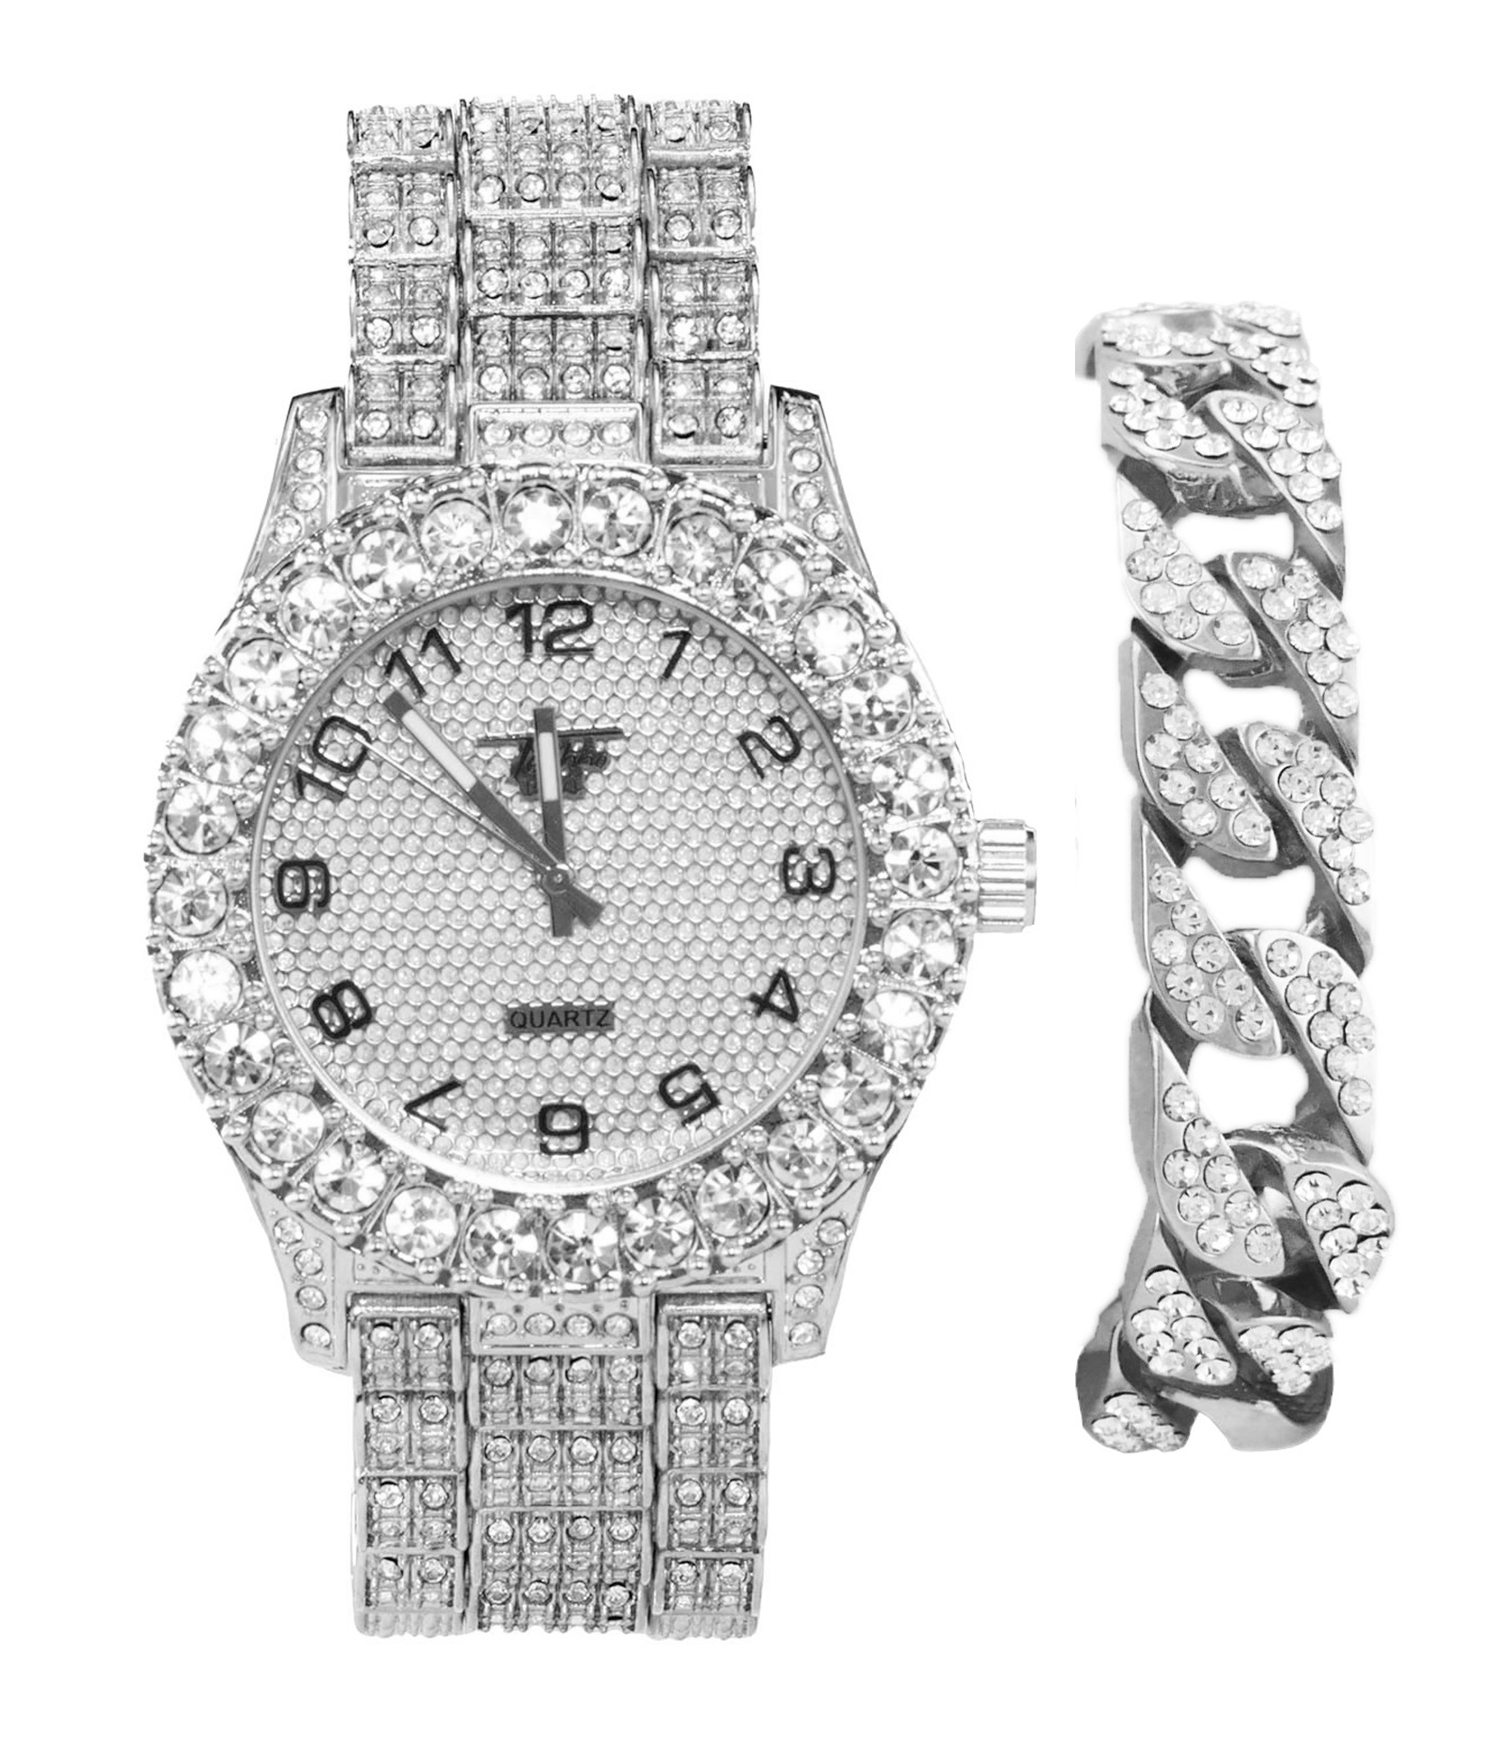 men s techno pave silver iced out watch with bling ed out cuban bracelet 2 piece combo set